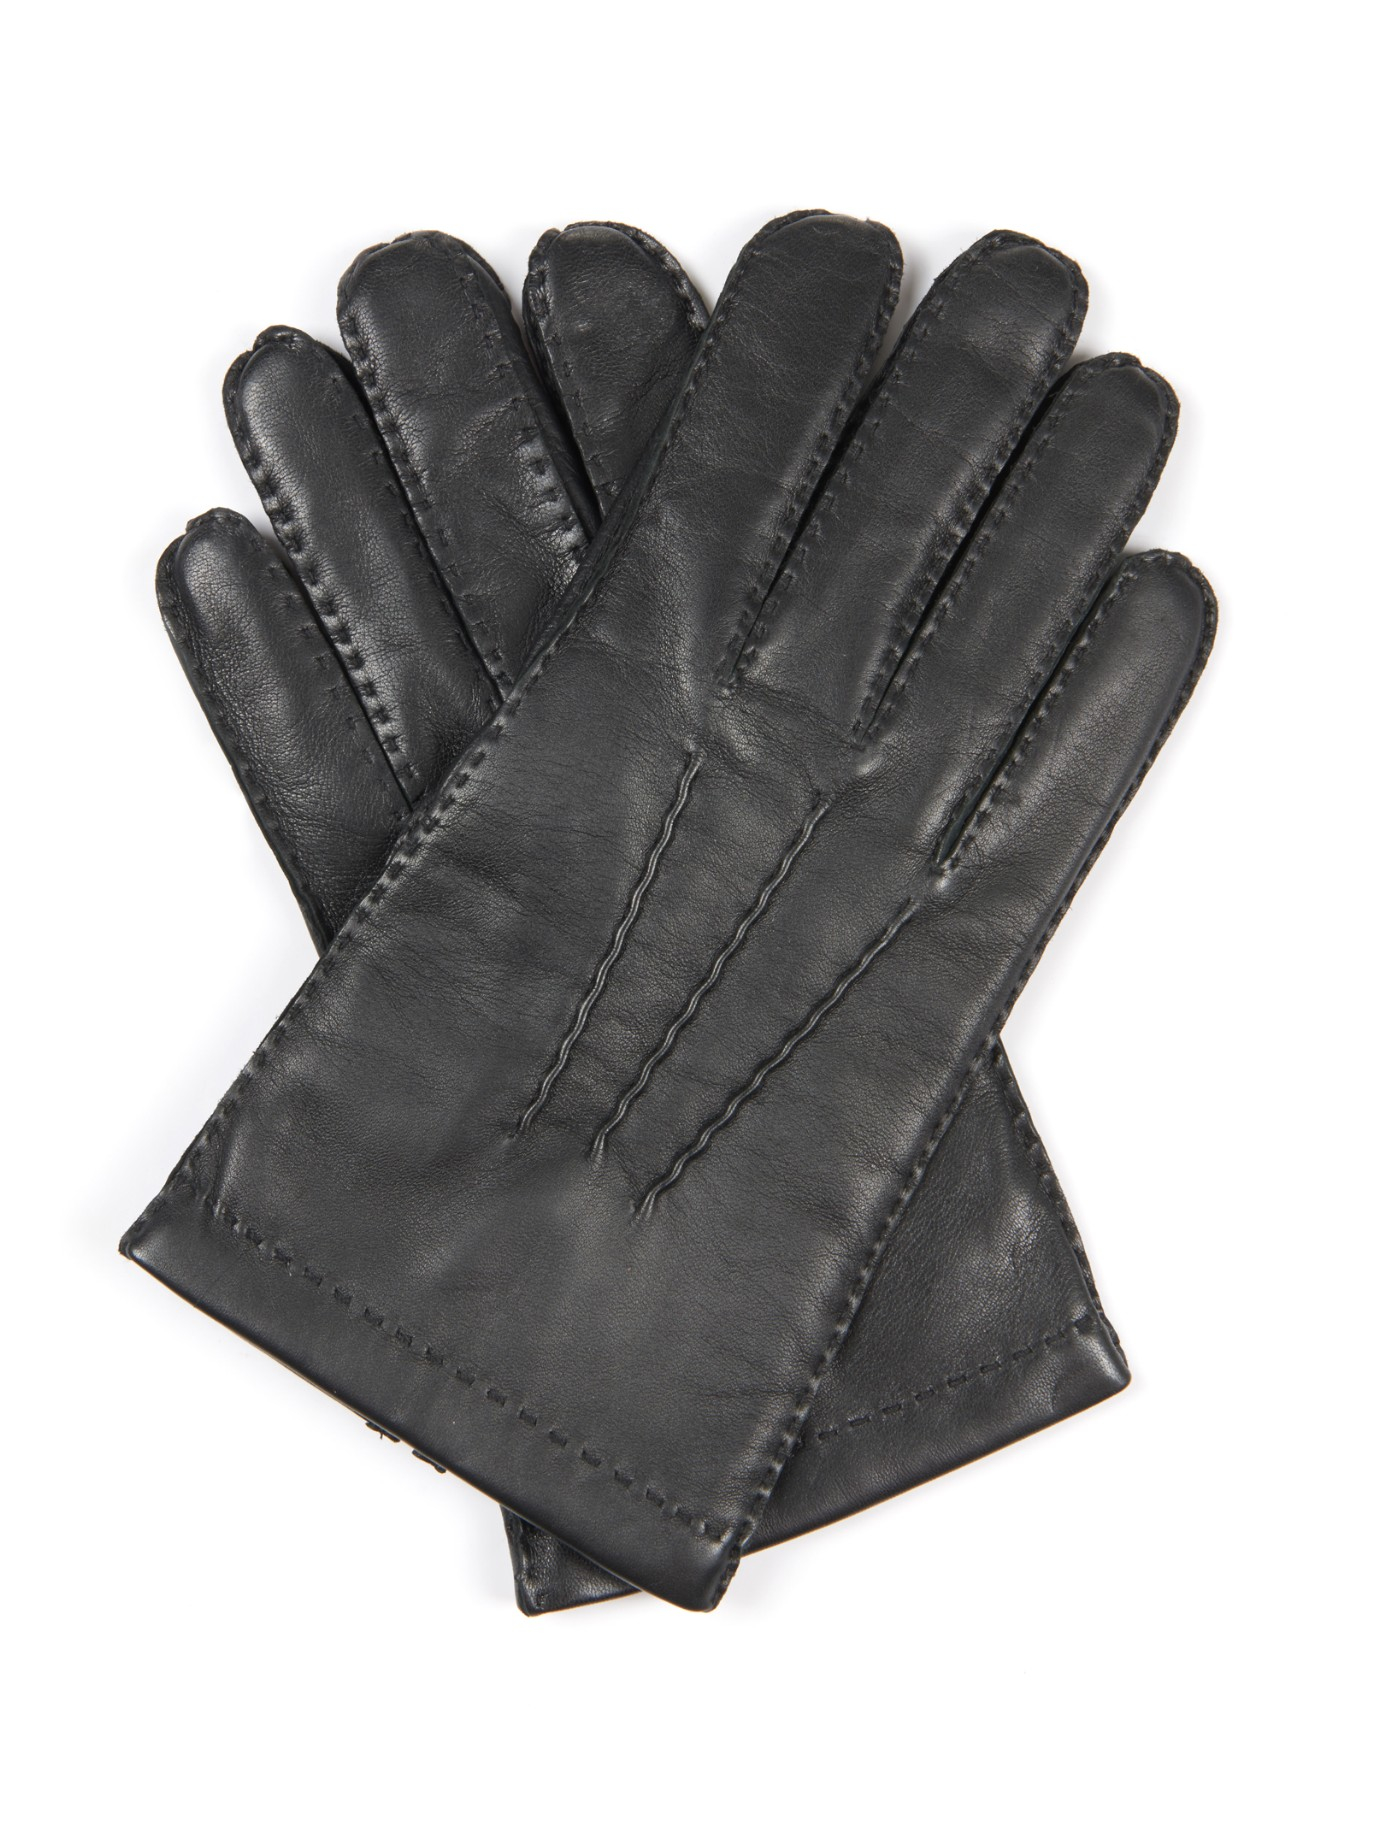 Mens leather gloves topman - Gallery Previously Sold At Matchesfashion Com Men S Leather Gloves